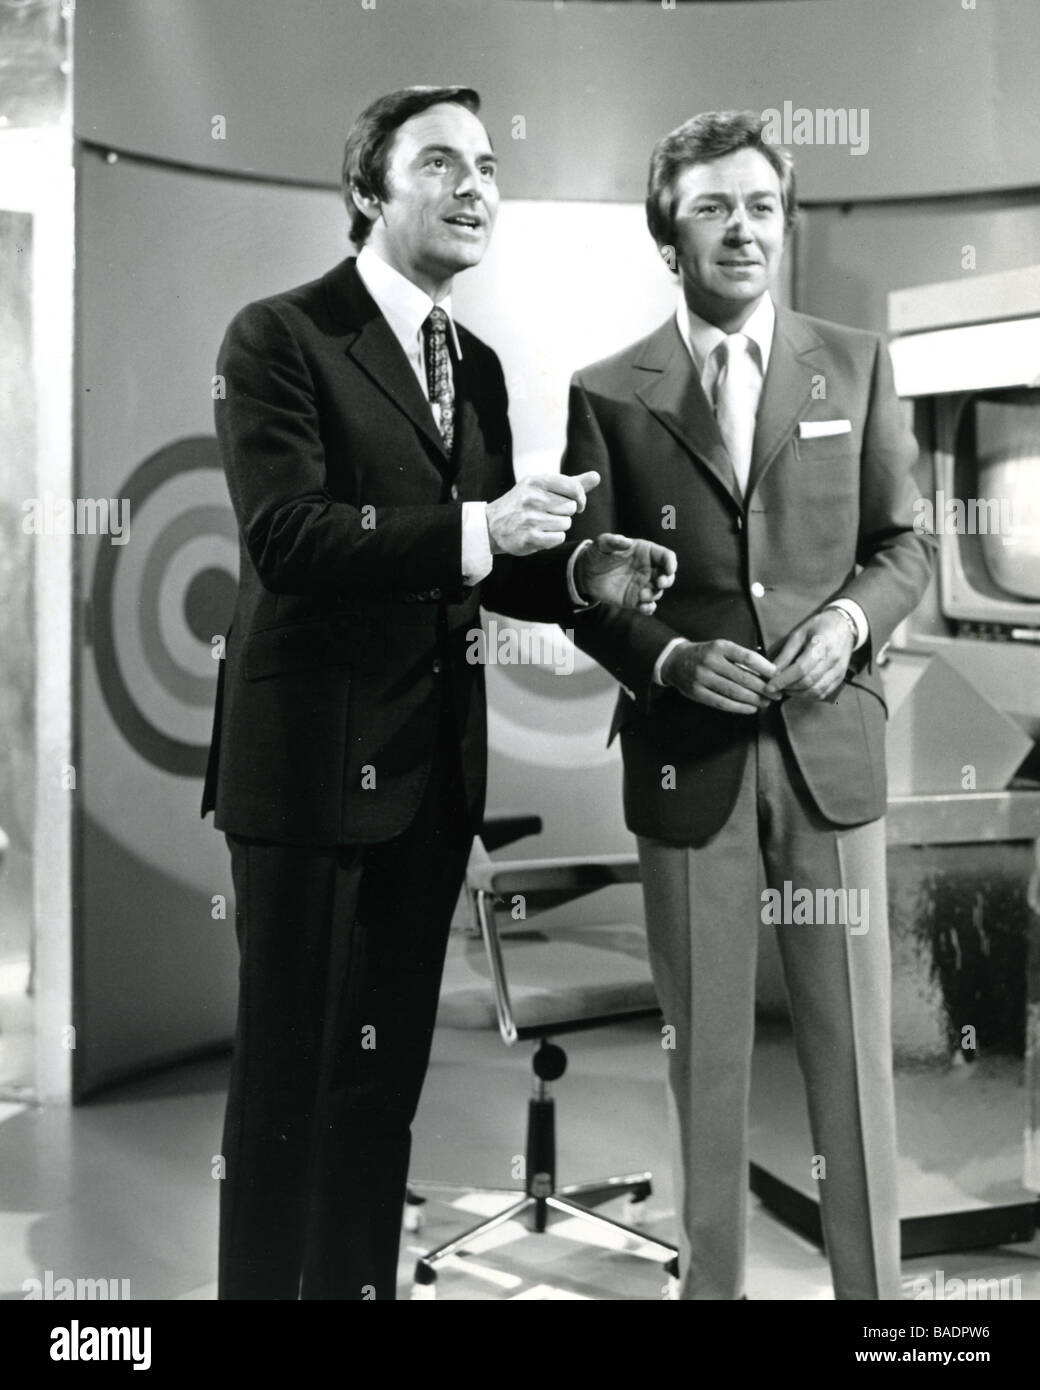 THE GOLDEN SHOT 1960s UK TV game show with compere Bob Monkhouse at left and singer Lionel Blair - Stock Image